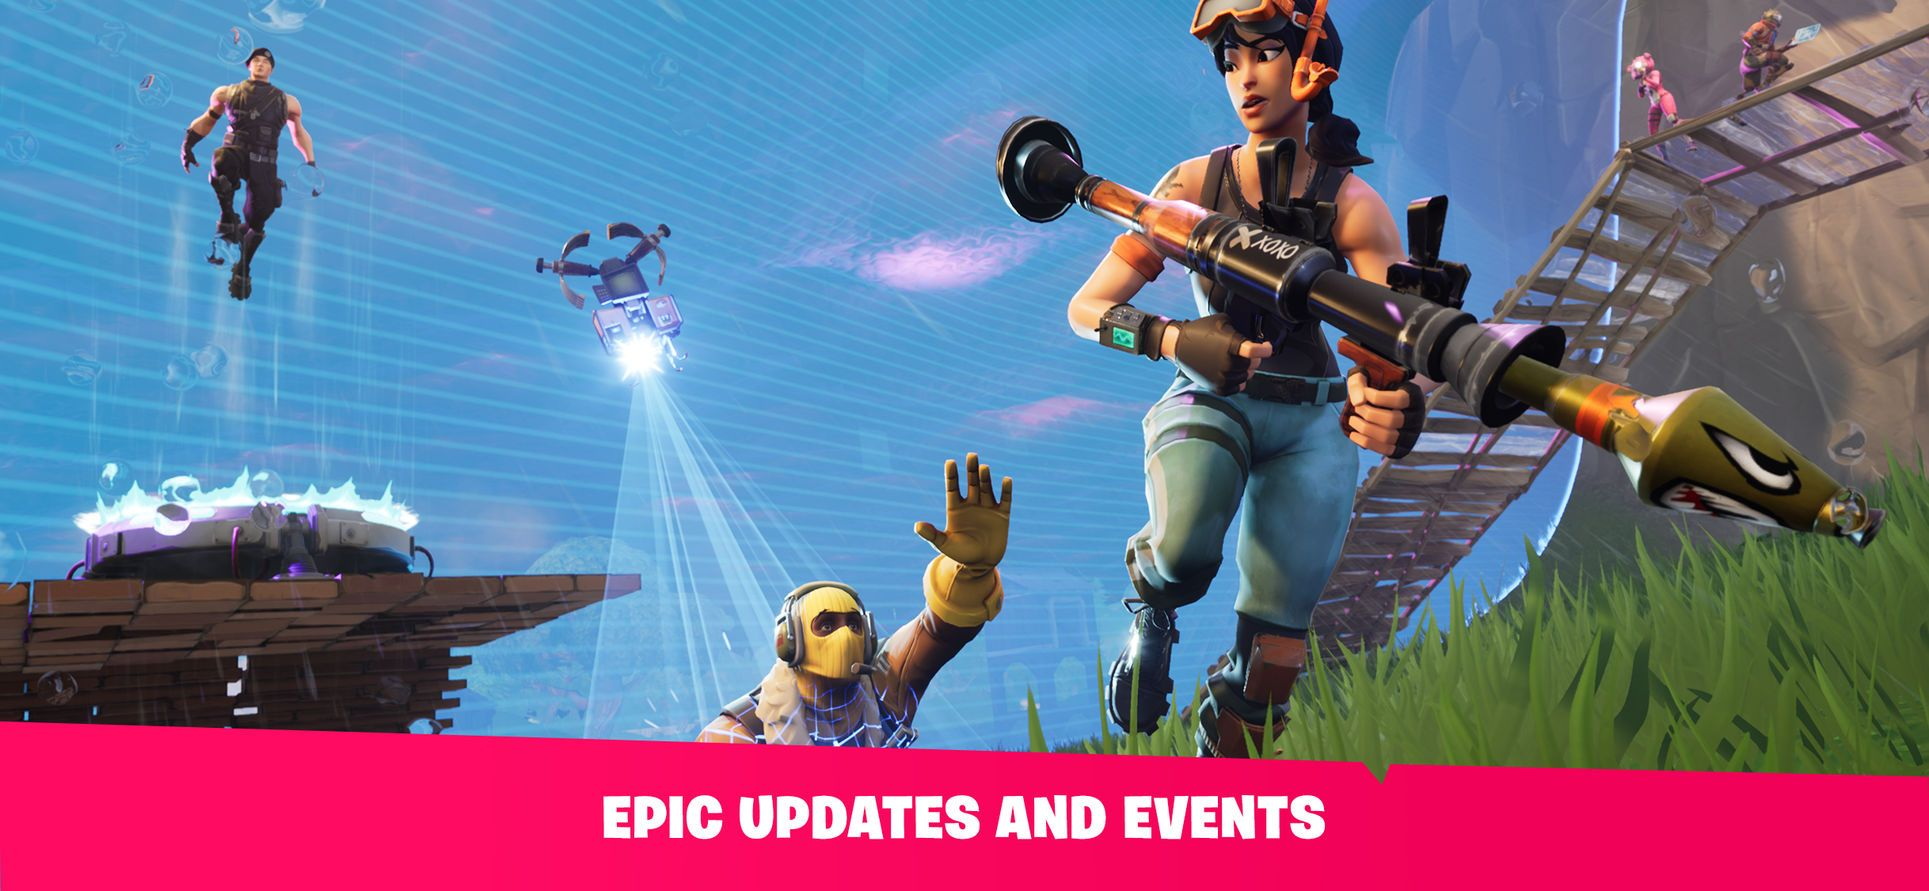 Fortnite AdventureActionappsios Battle royale game